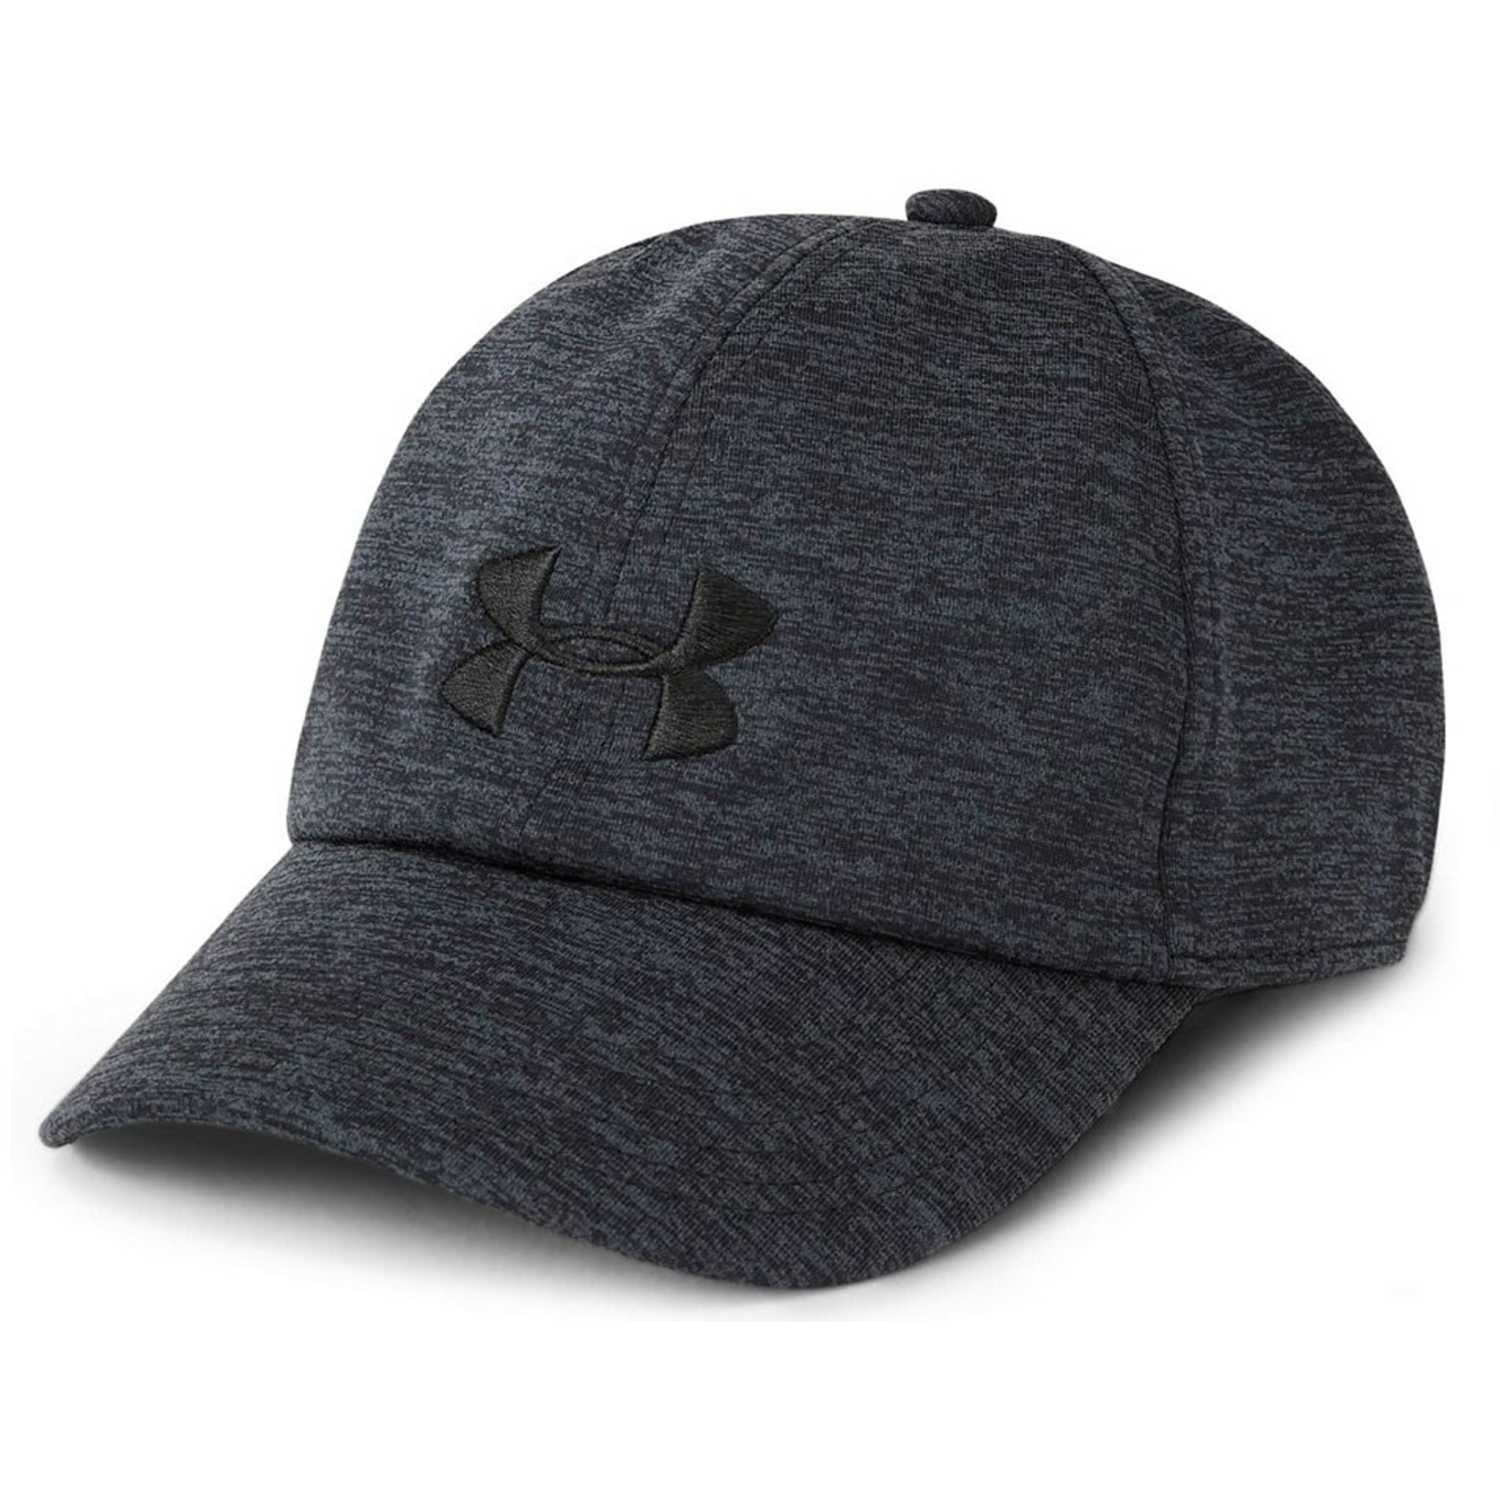 Gorro de Mujer Under Armour Plomo ua twisted renegade cap ... 3fdec7130fc